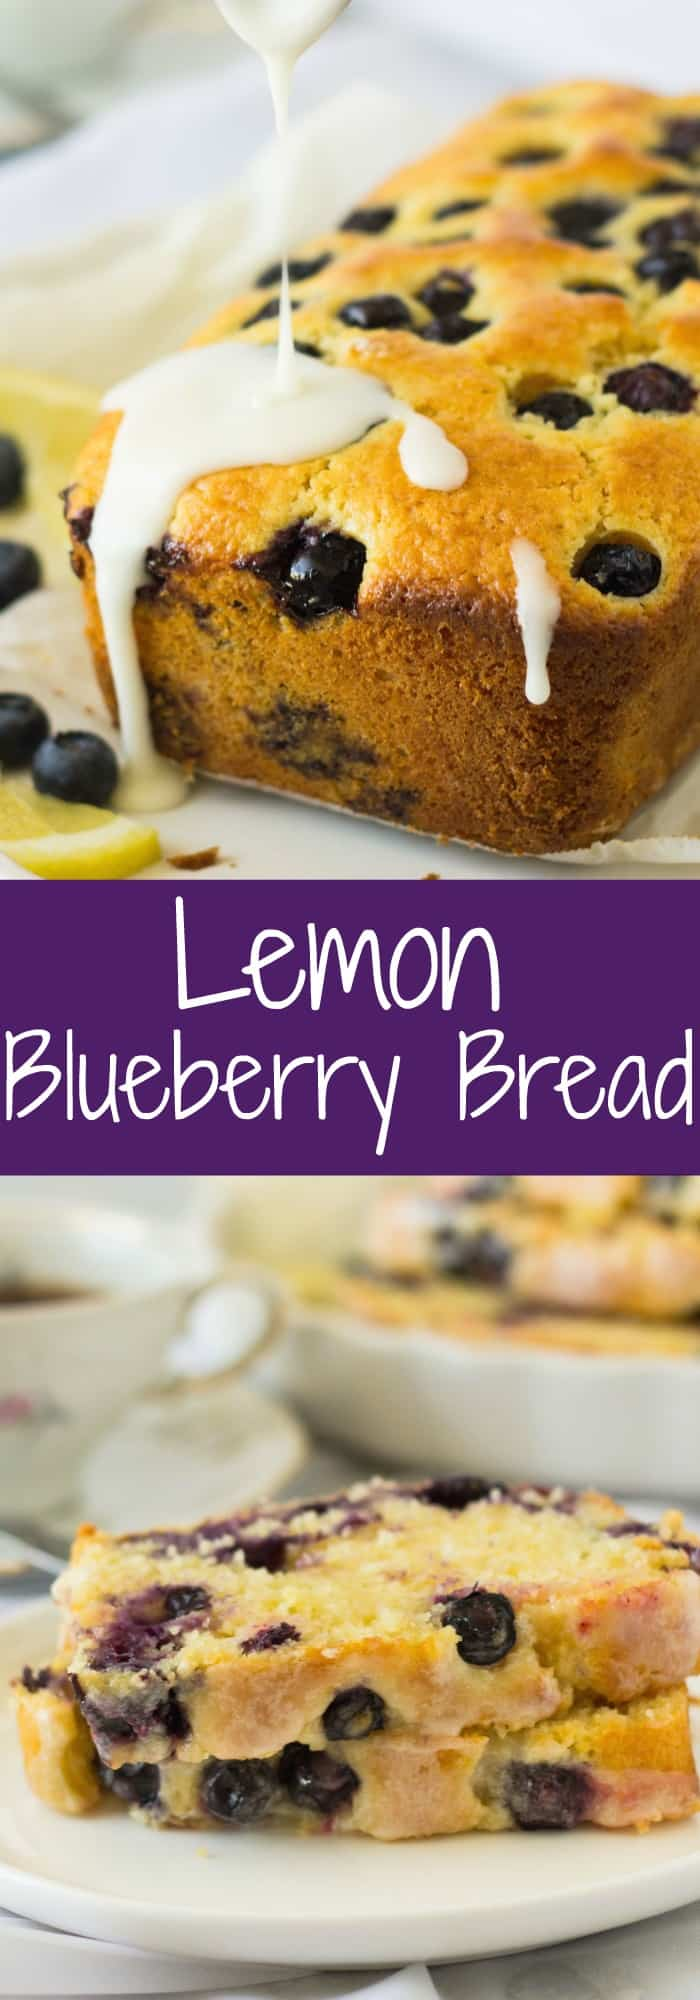 This moist Lemon Blueberry Bread is studded with juicy blueberries and loaded with lemon flavor. The optional lemon glaze adds more flavor and locks in moisture.